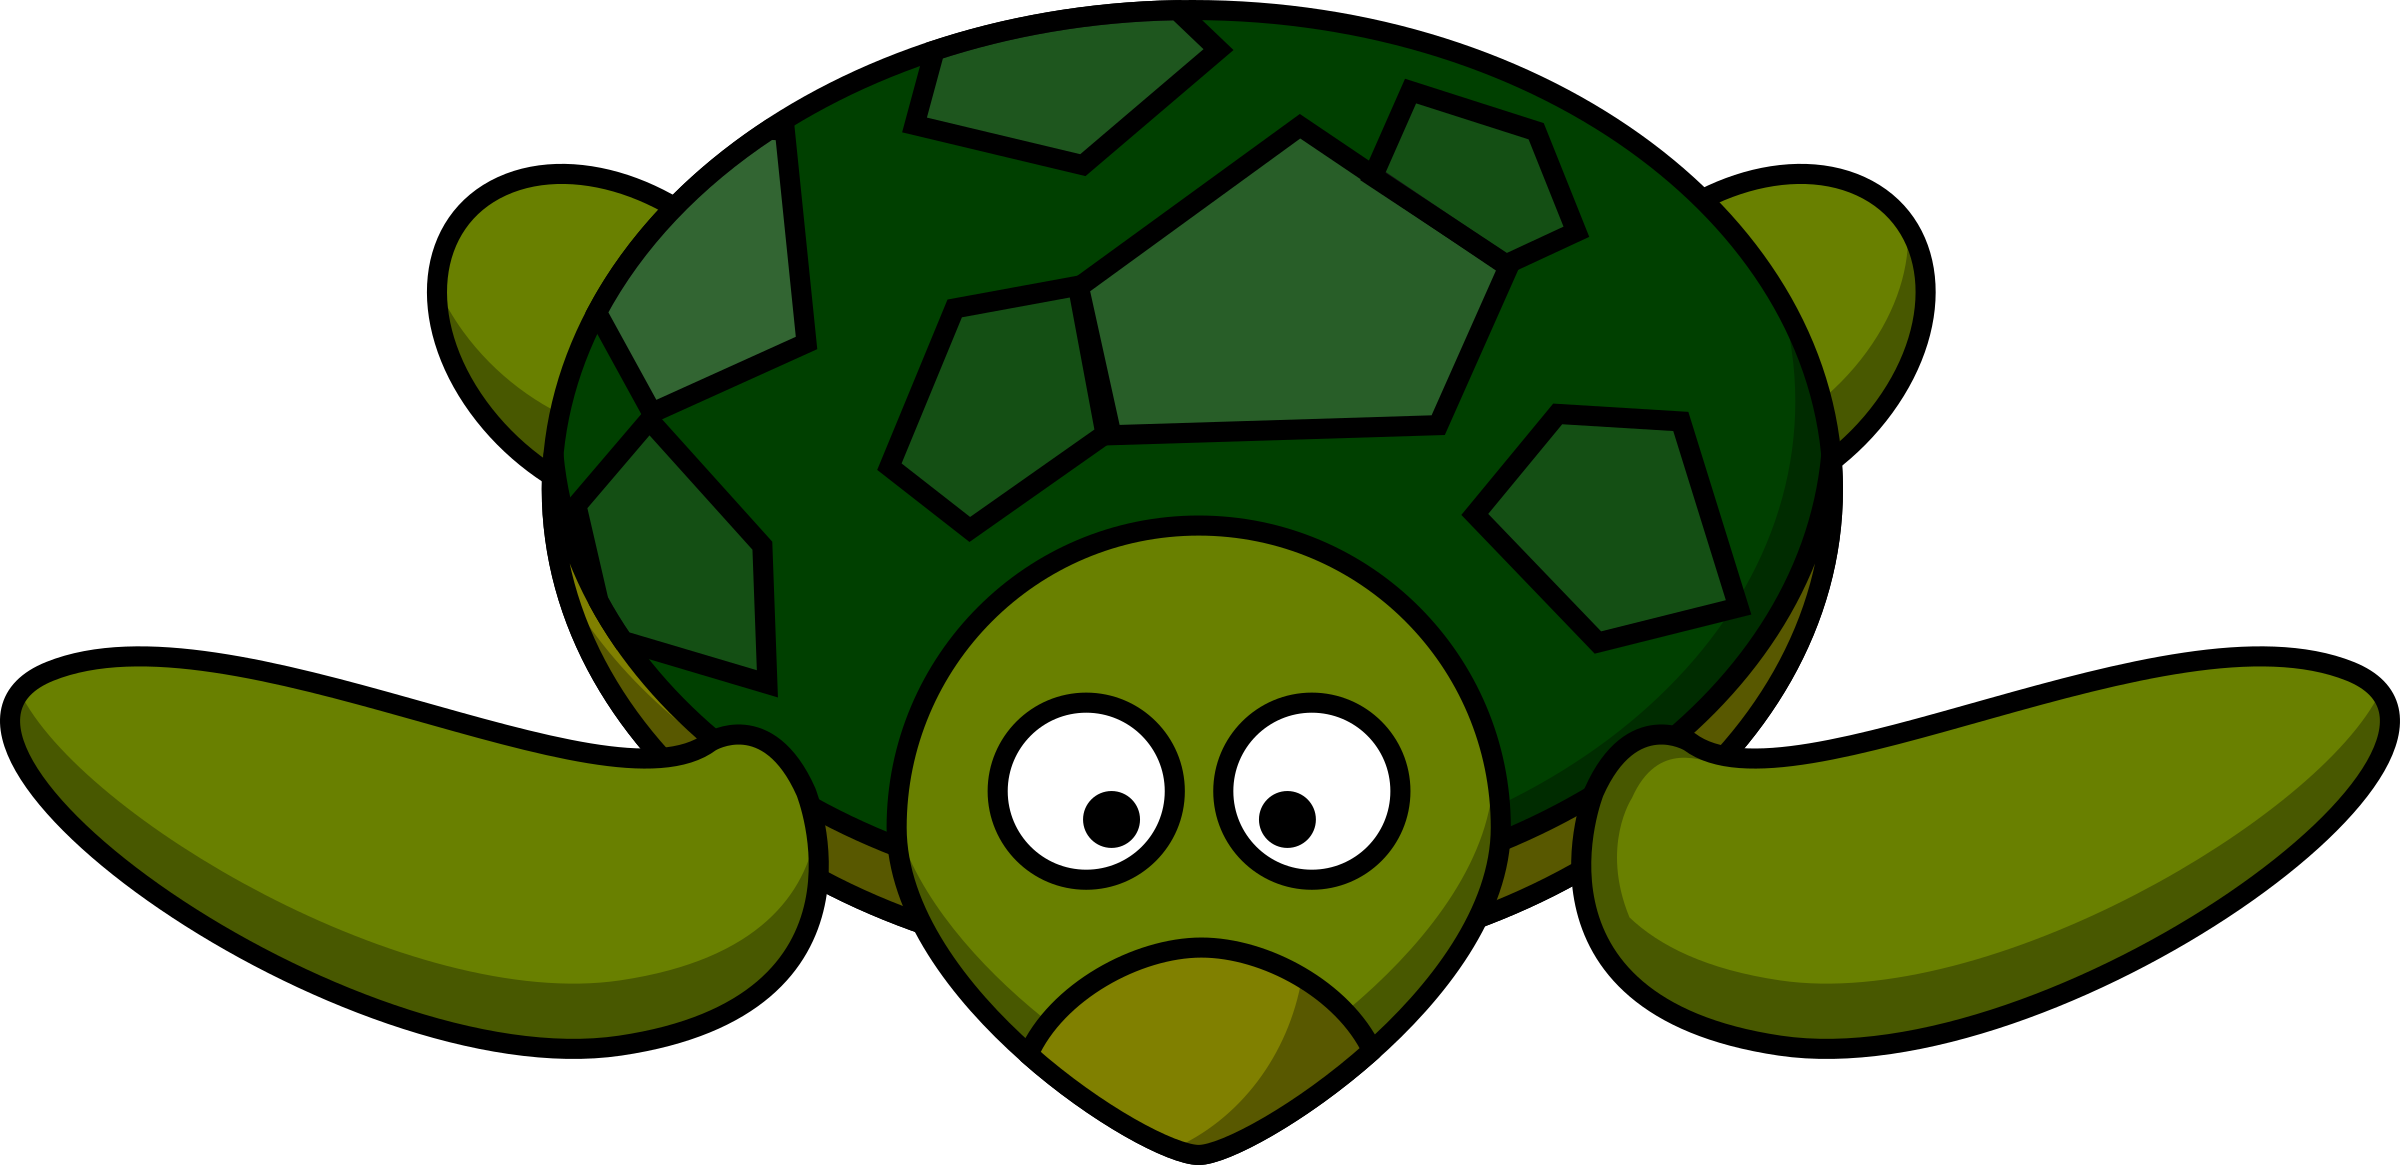 Pet clipart pet tortoise. Cartoon turtle big image